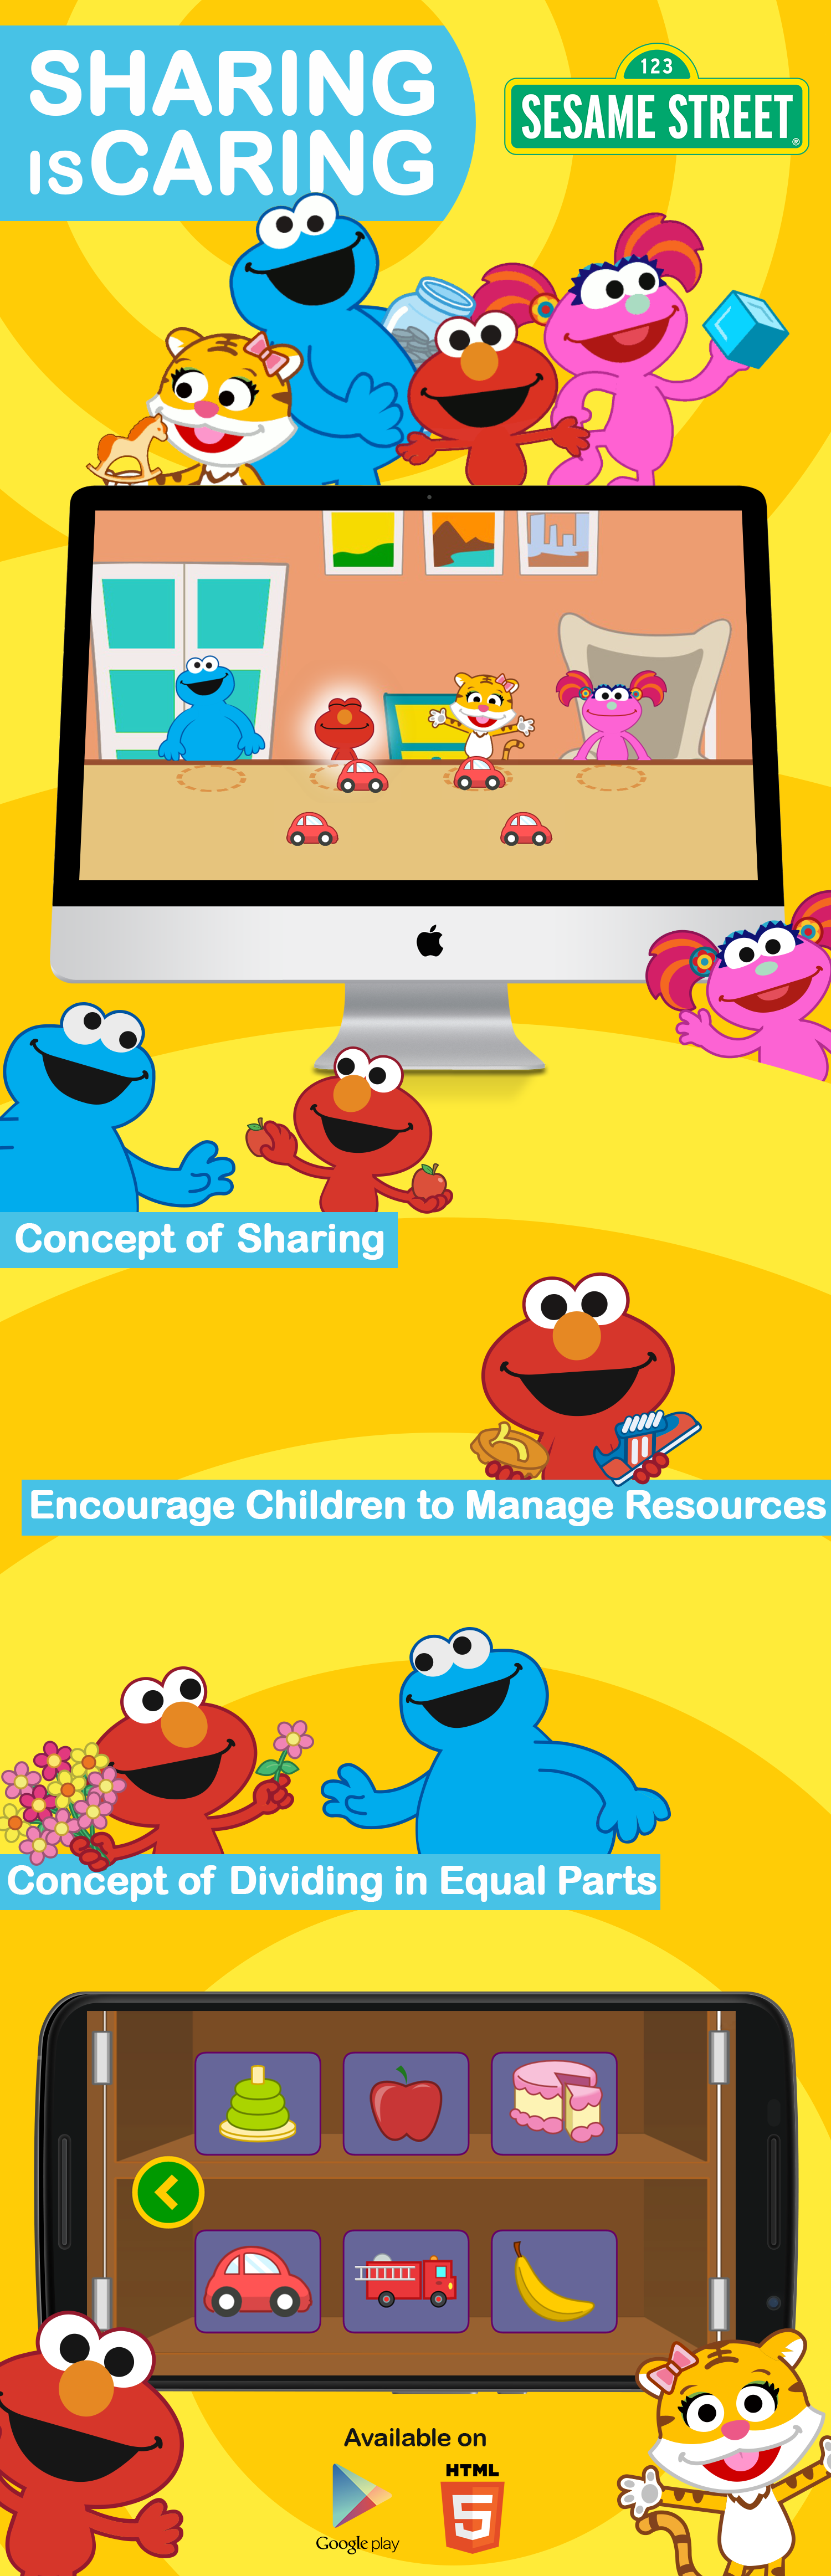 SesameStreet-Sharing-Is-Caring-education-game-goodworklabs